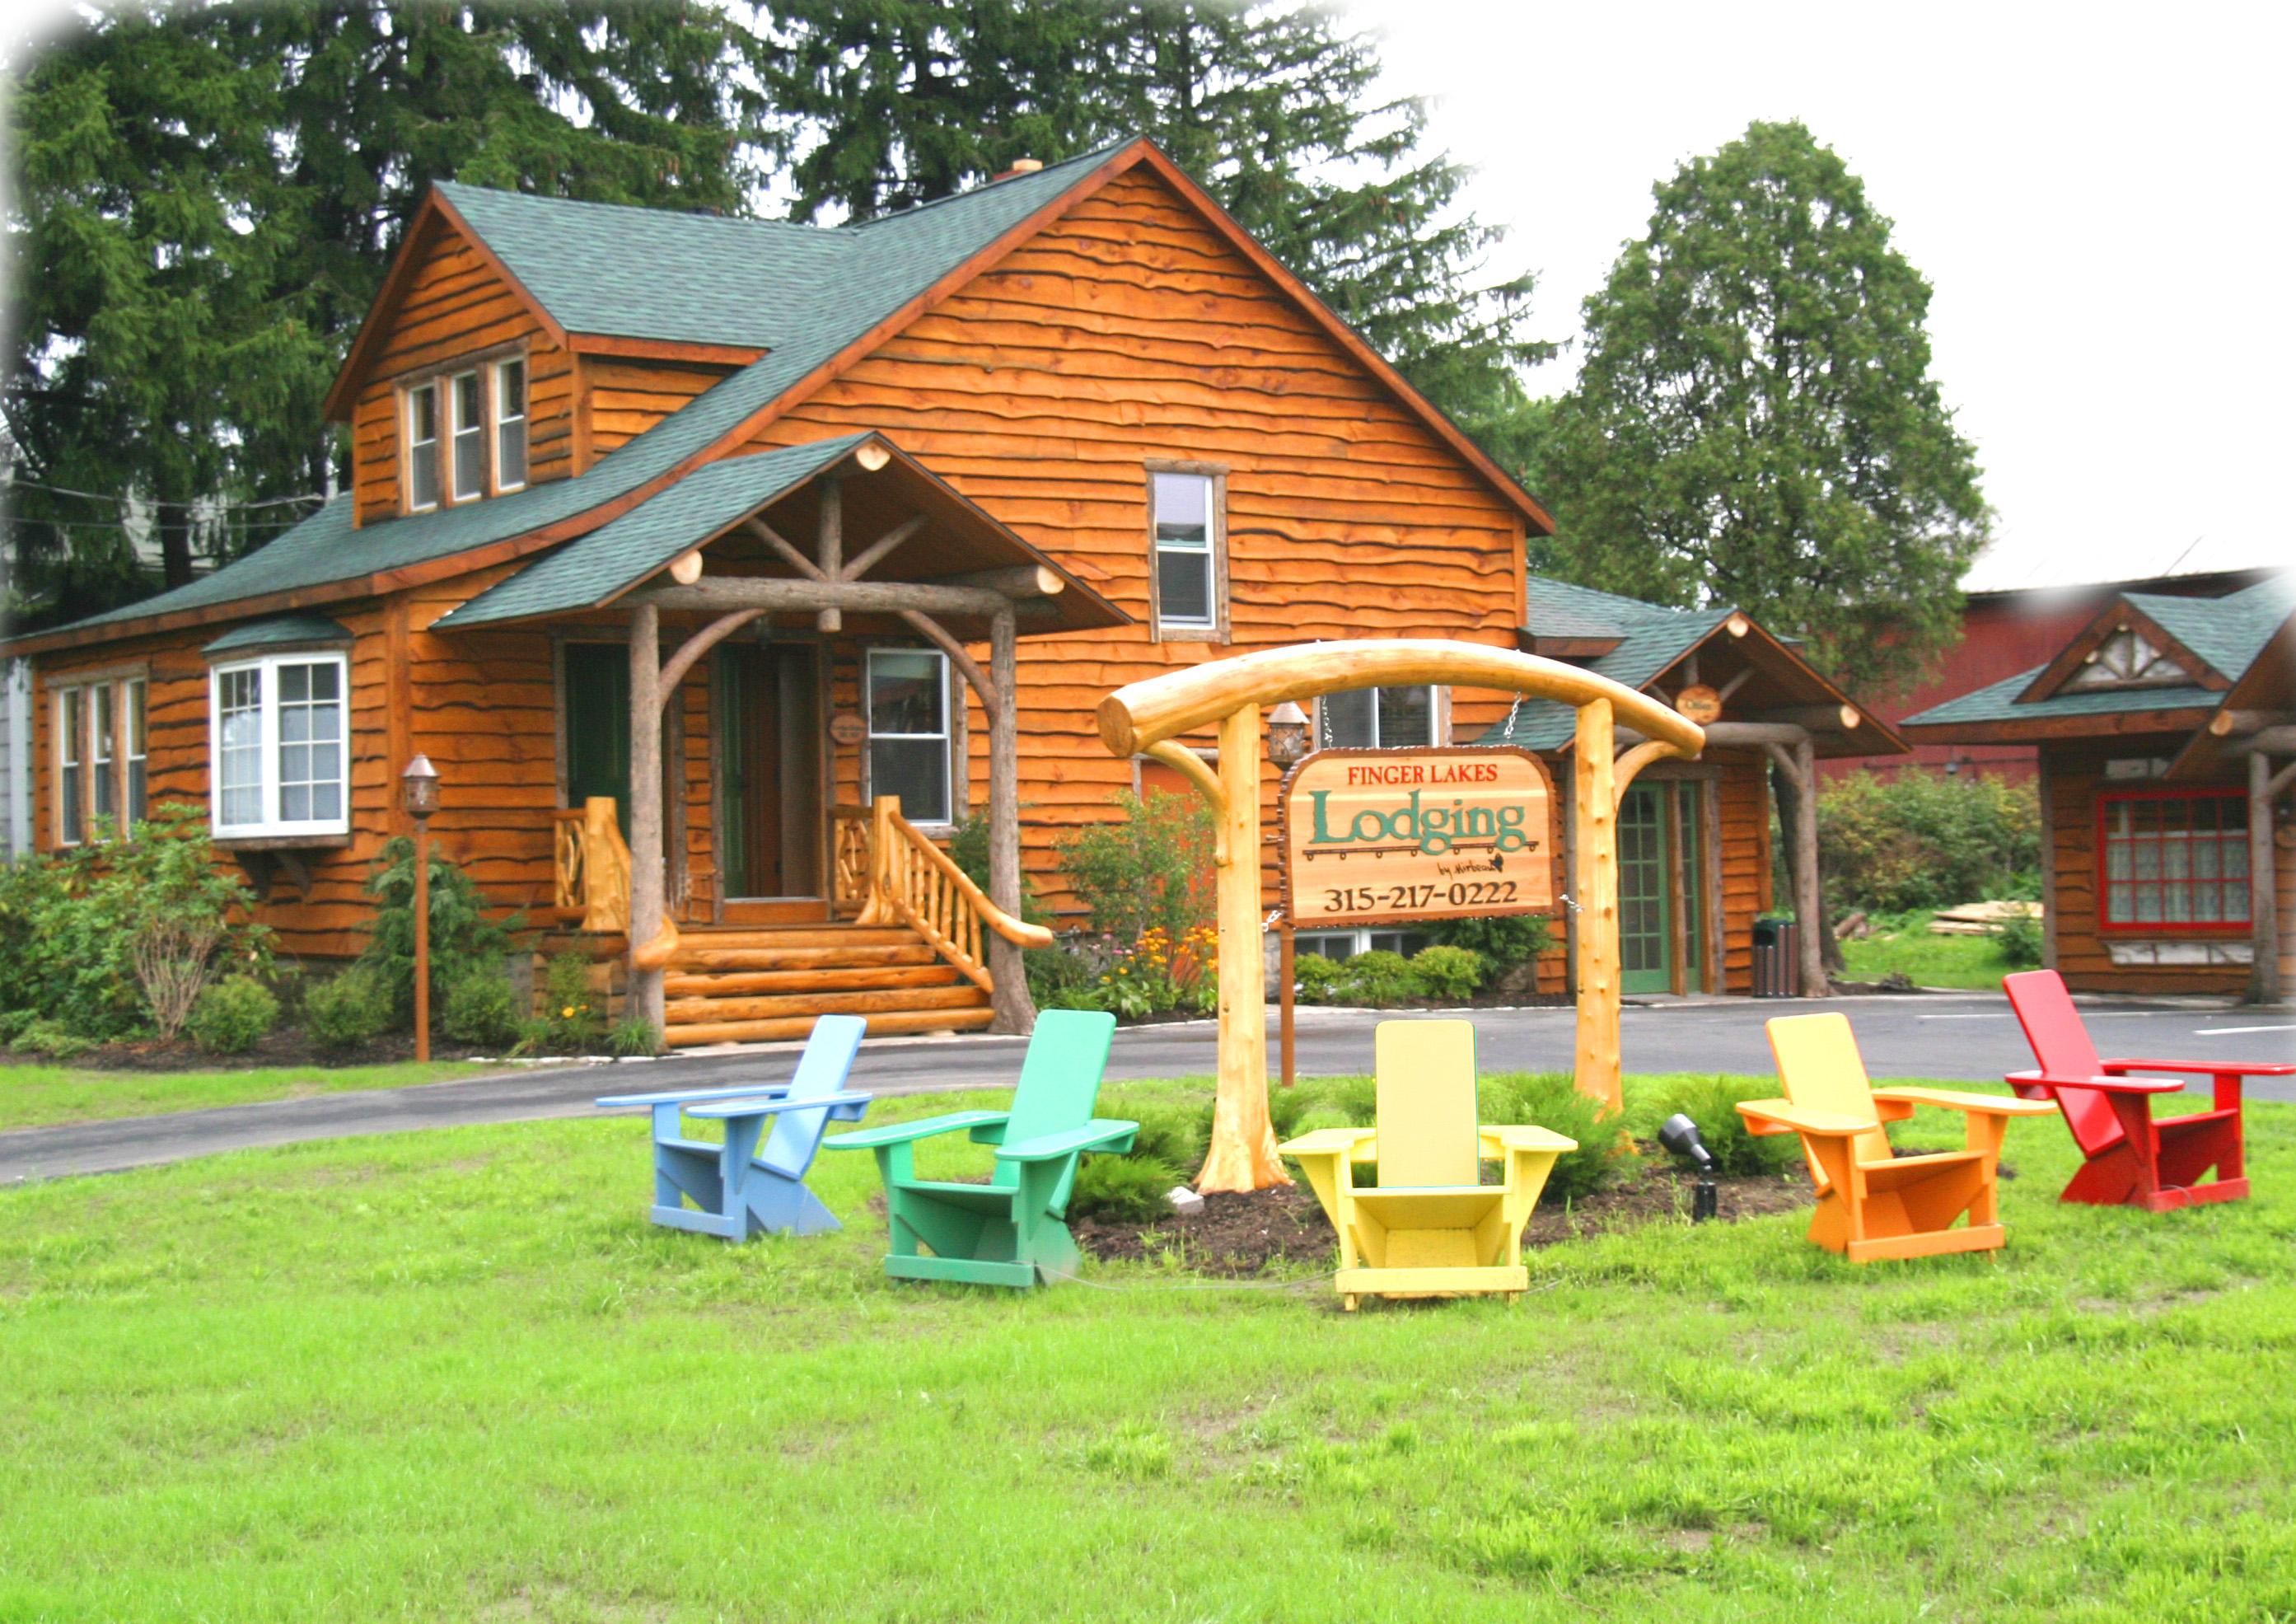 Finger Lakes Lodging